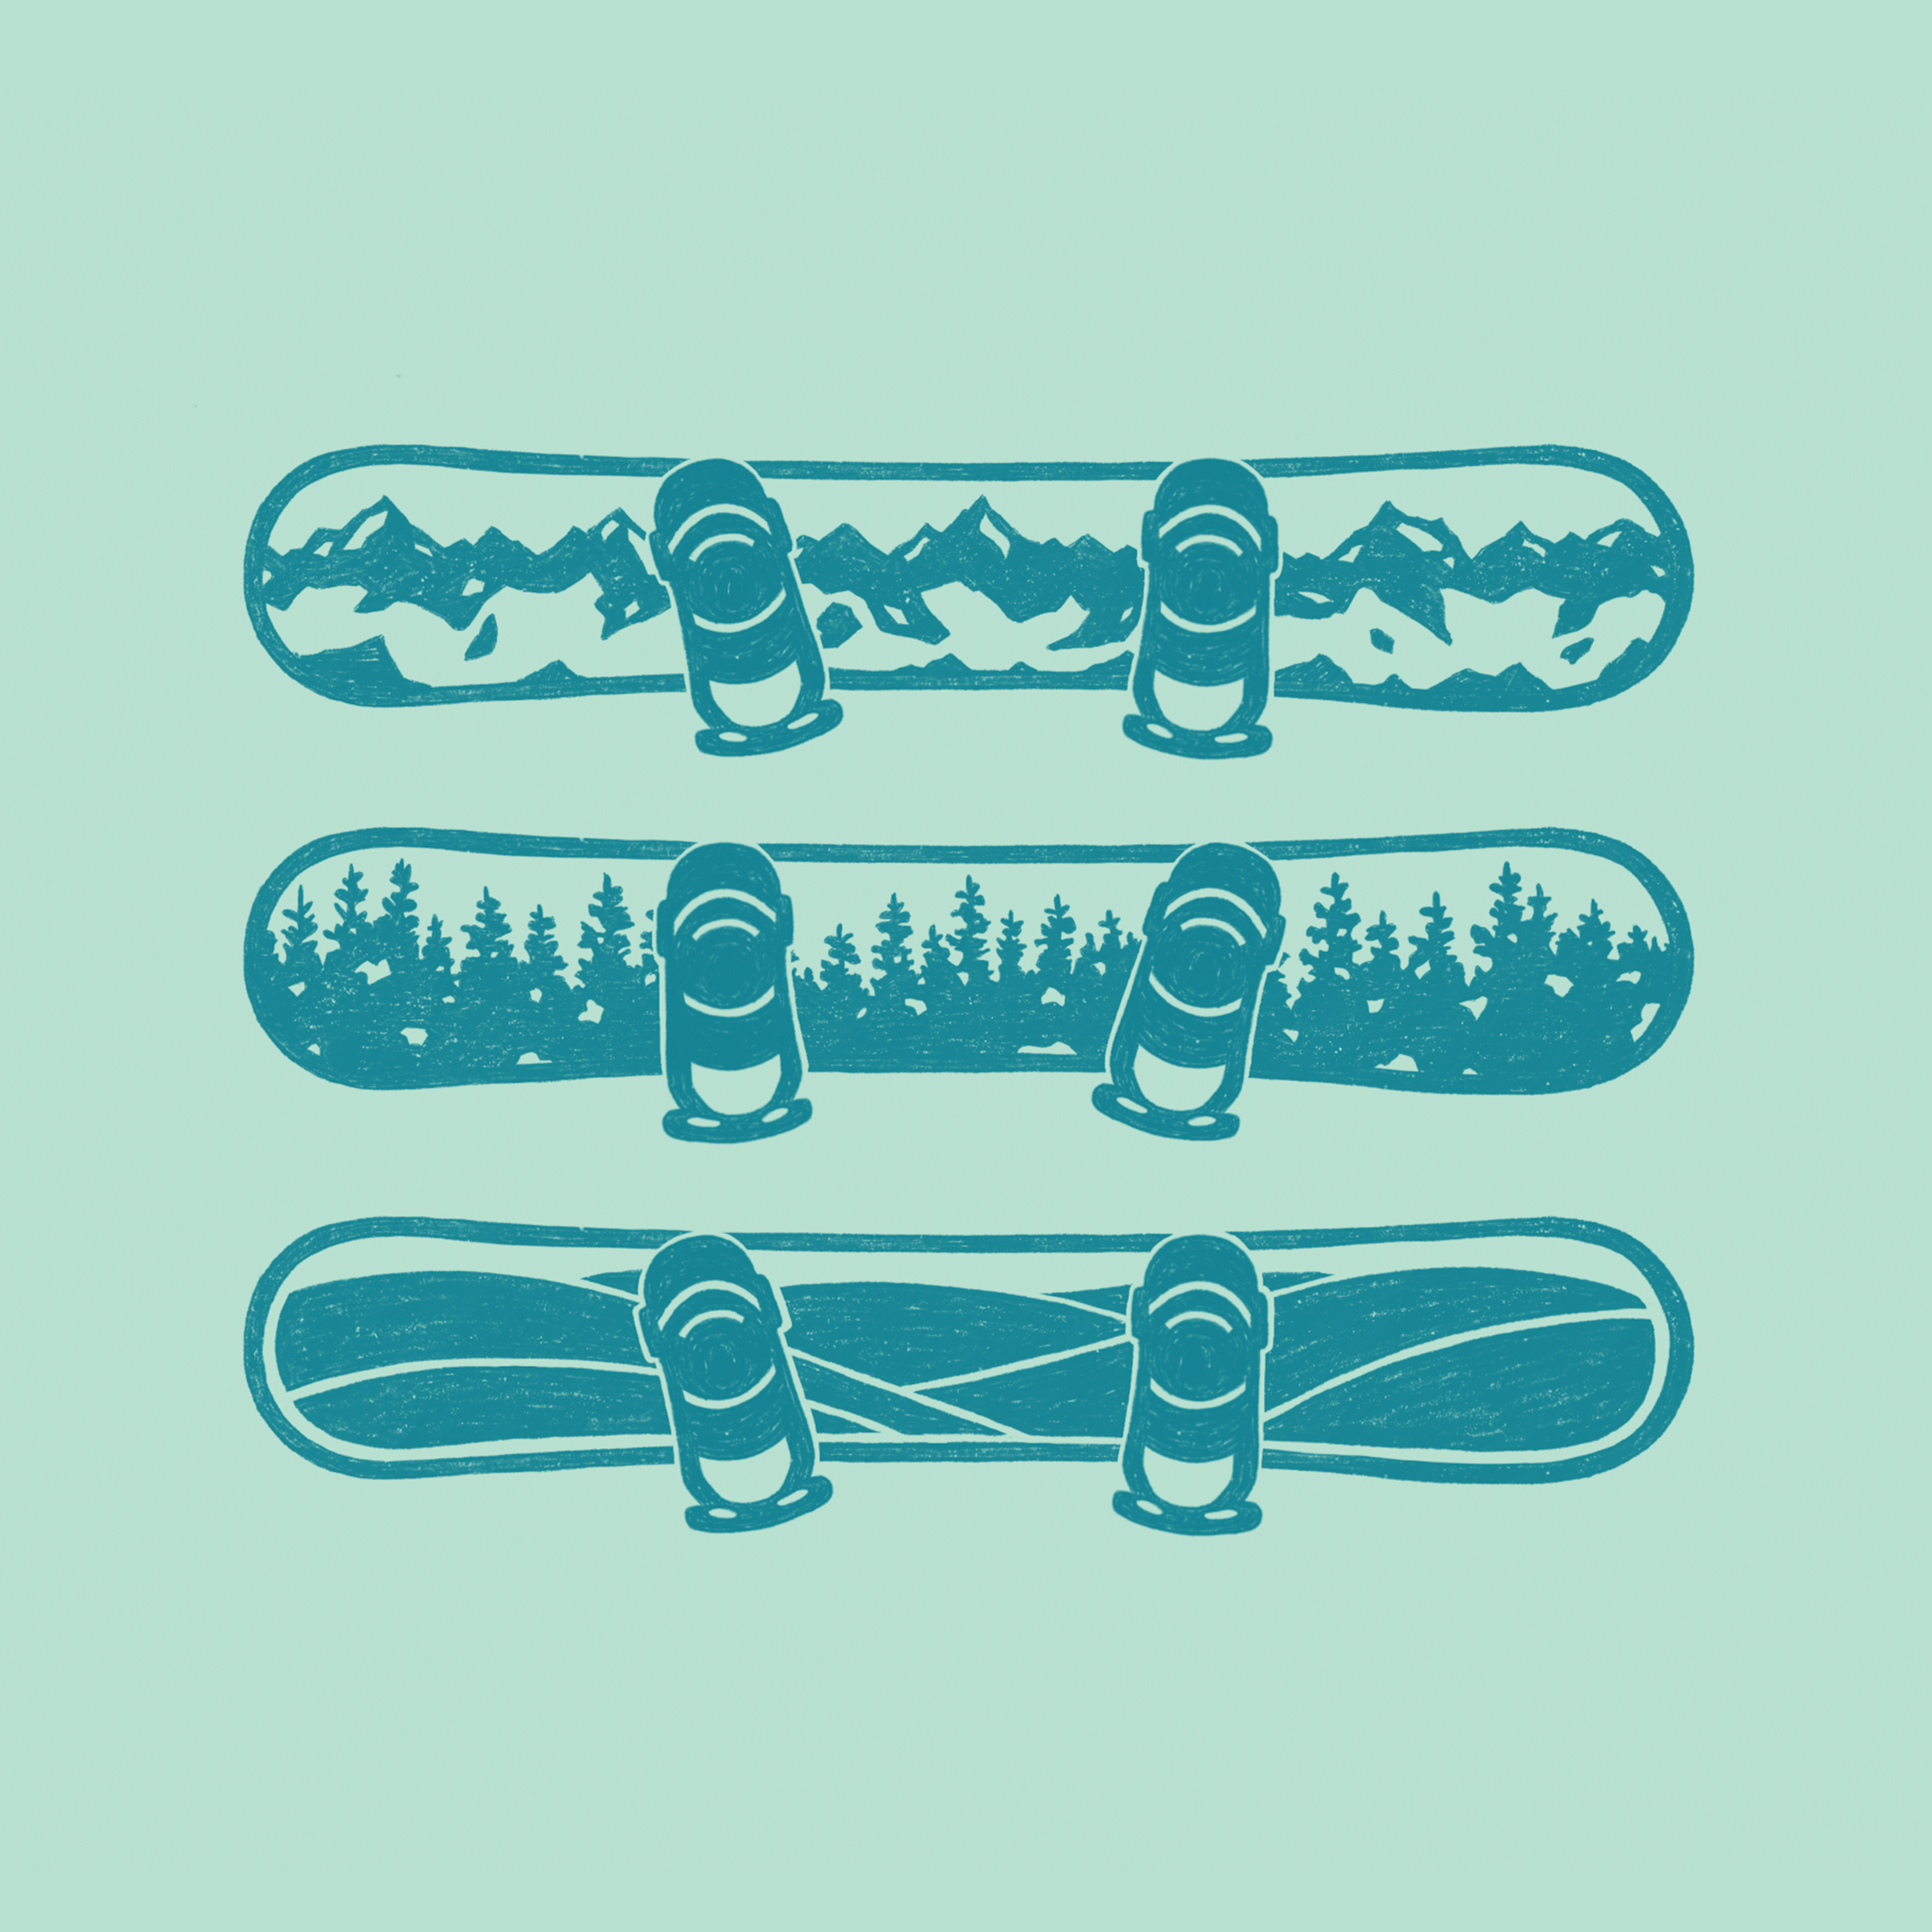 snowboards.png